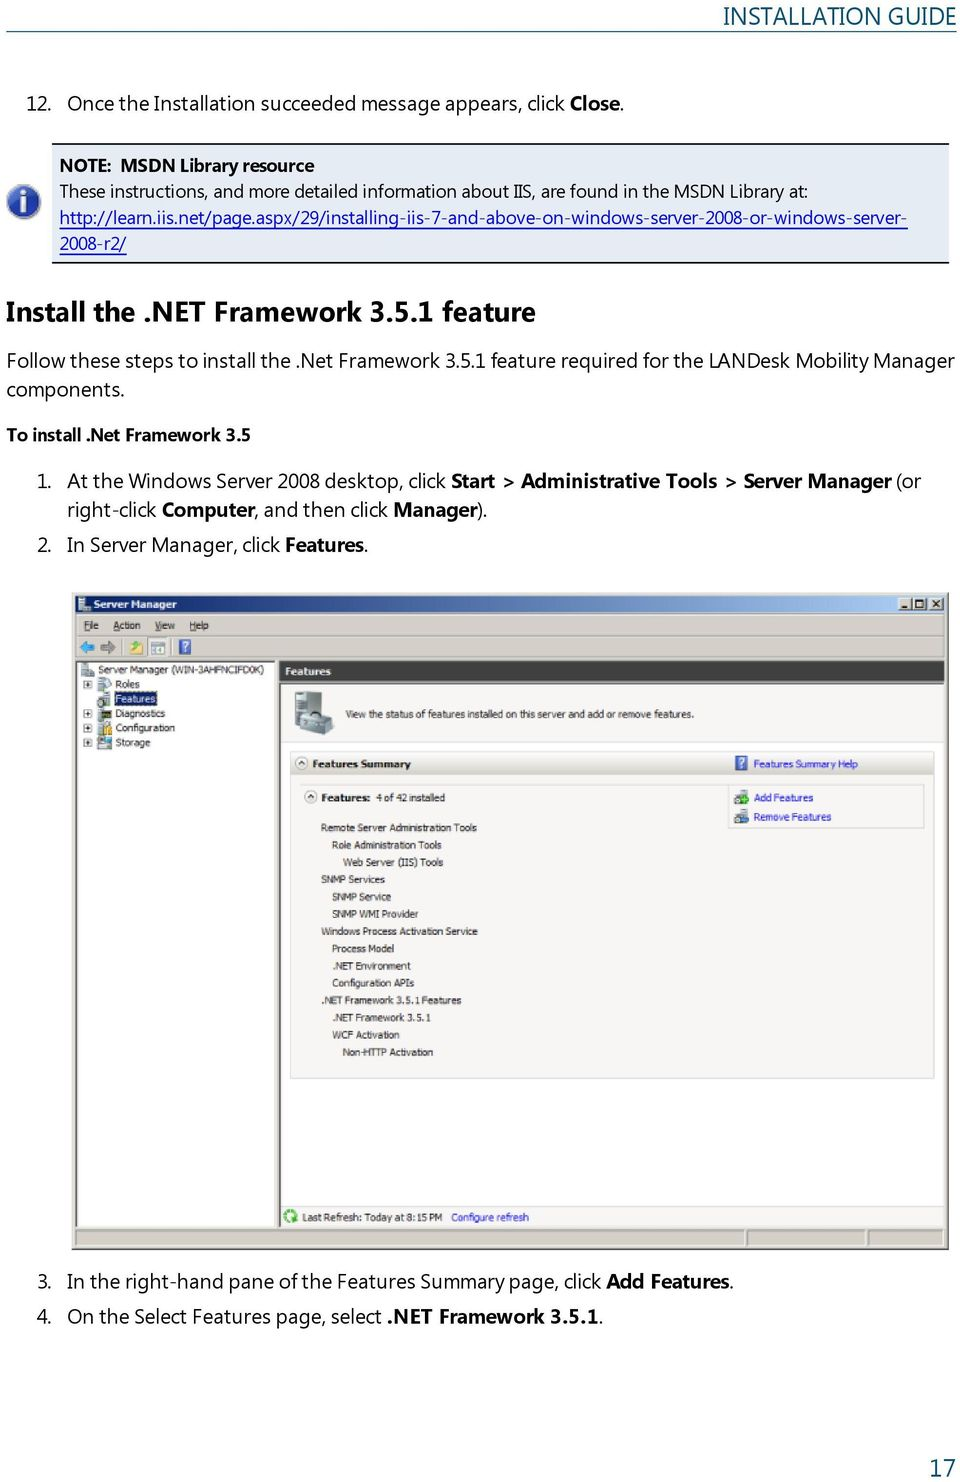 aspx/29/installing-iis-7-and-above-on-windows-server-2008-or-windows-server- 2008-r2/ Install the.net Framework 3.5.1 feature Follow these steps to install the.net Framework 3.5.1 feature required for the LANDesk Mobility Manager components.